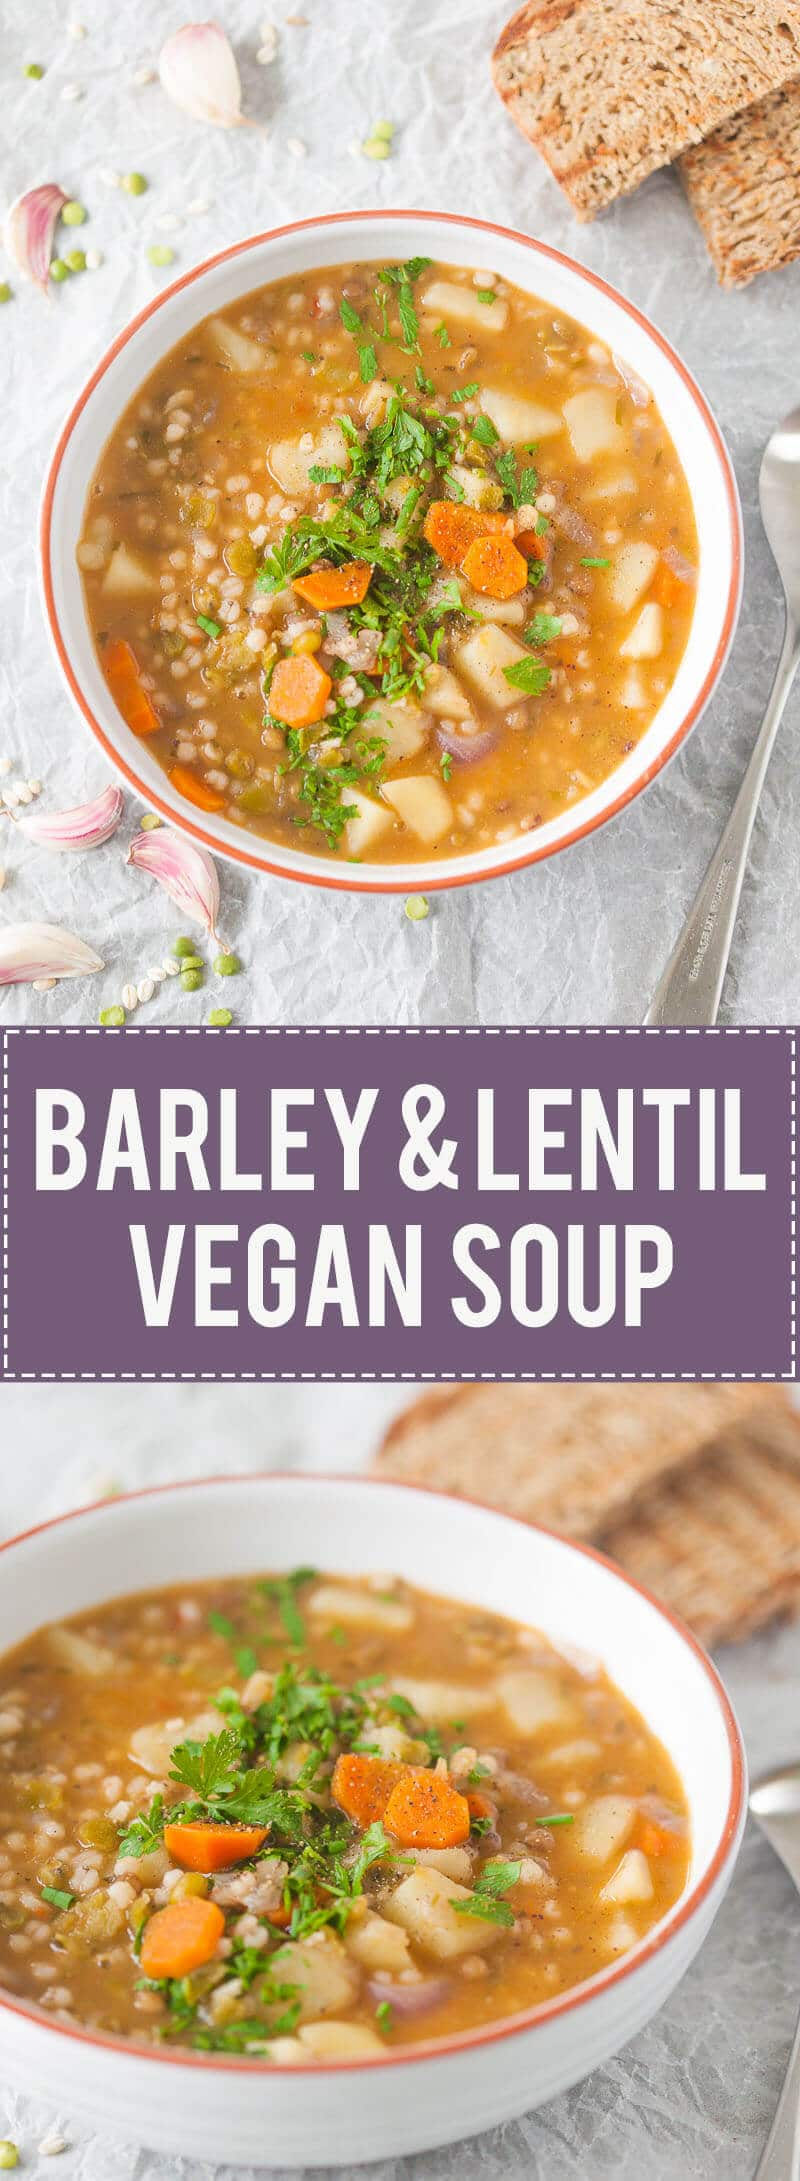 This Vegan Barley and Lentil Soup is rich and will fill you up and warm you on a cold winter day.